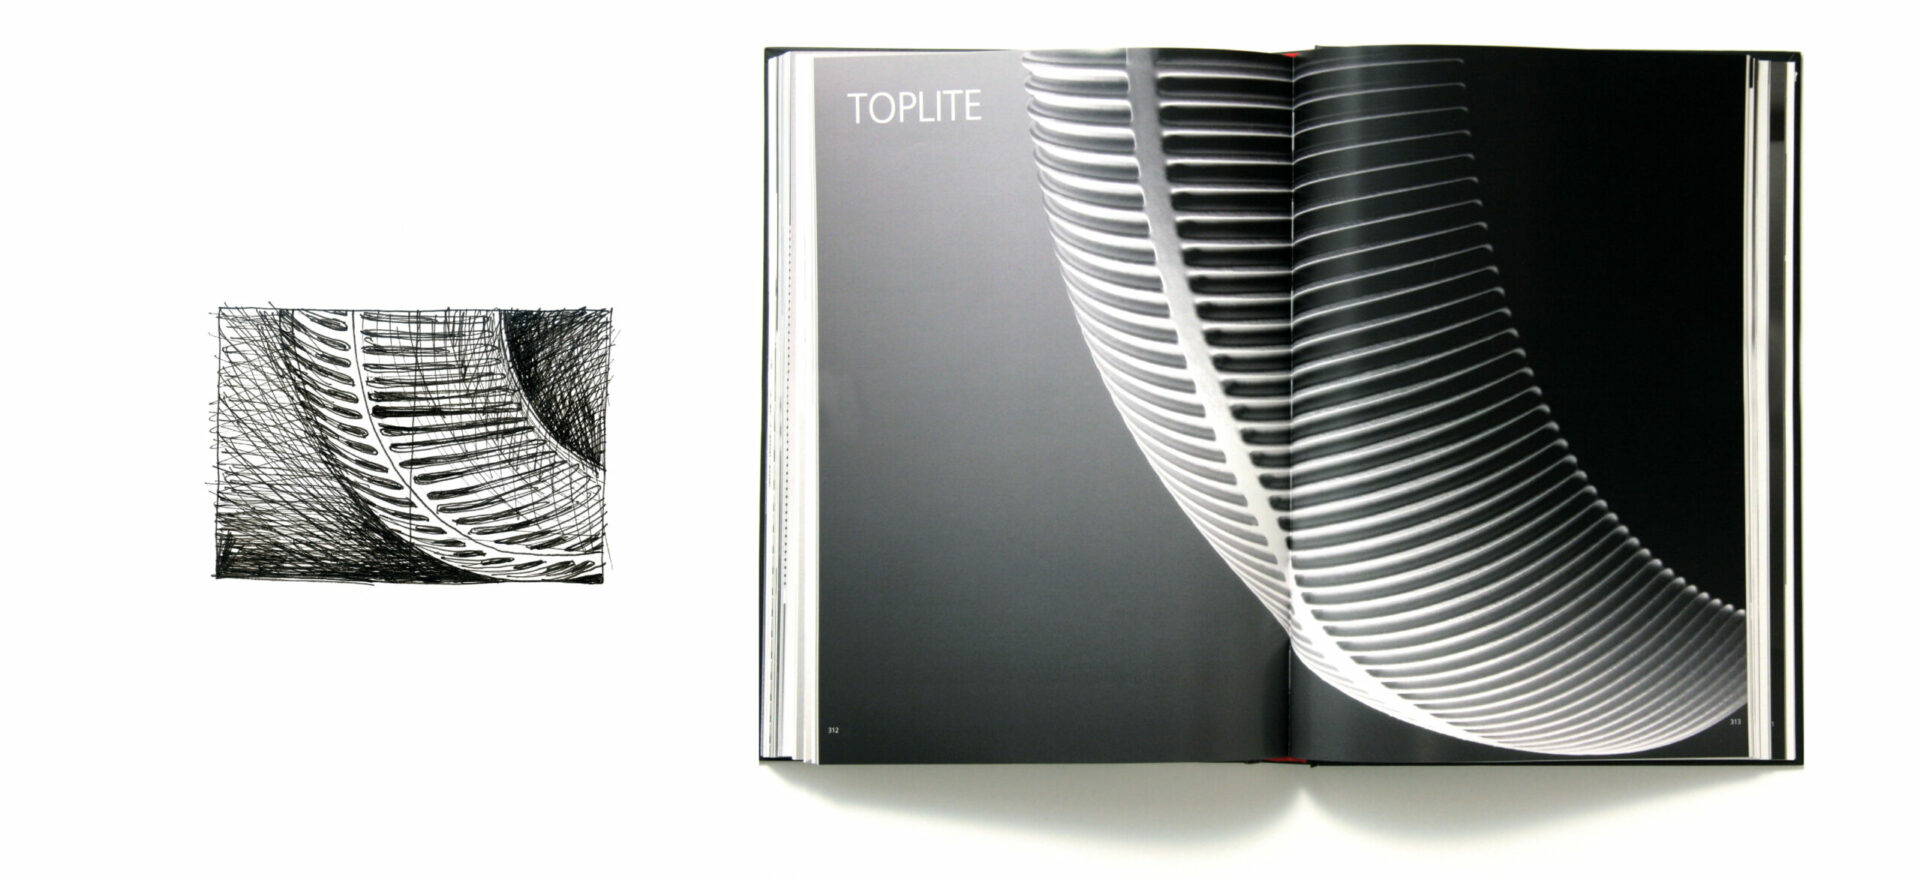 Greyscale Catalog of Toplite model for Artemide Architectural, light design with 1 sketch in black and white on the left side of the image and the opened brochure on the right side of the image showing model Toplite in a greyscale image.